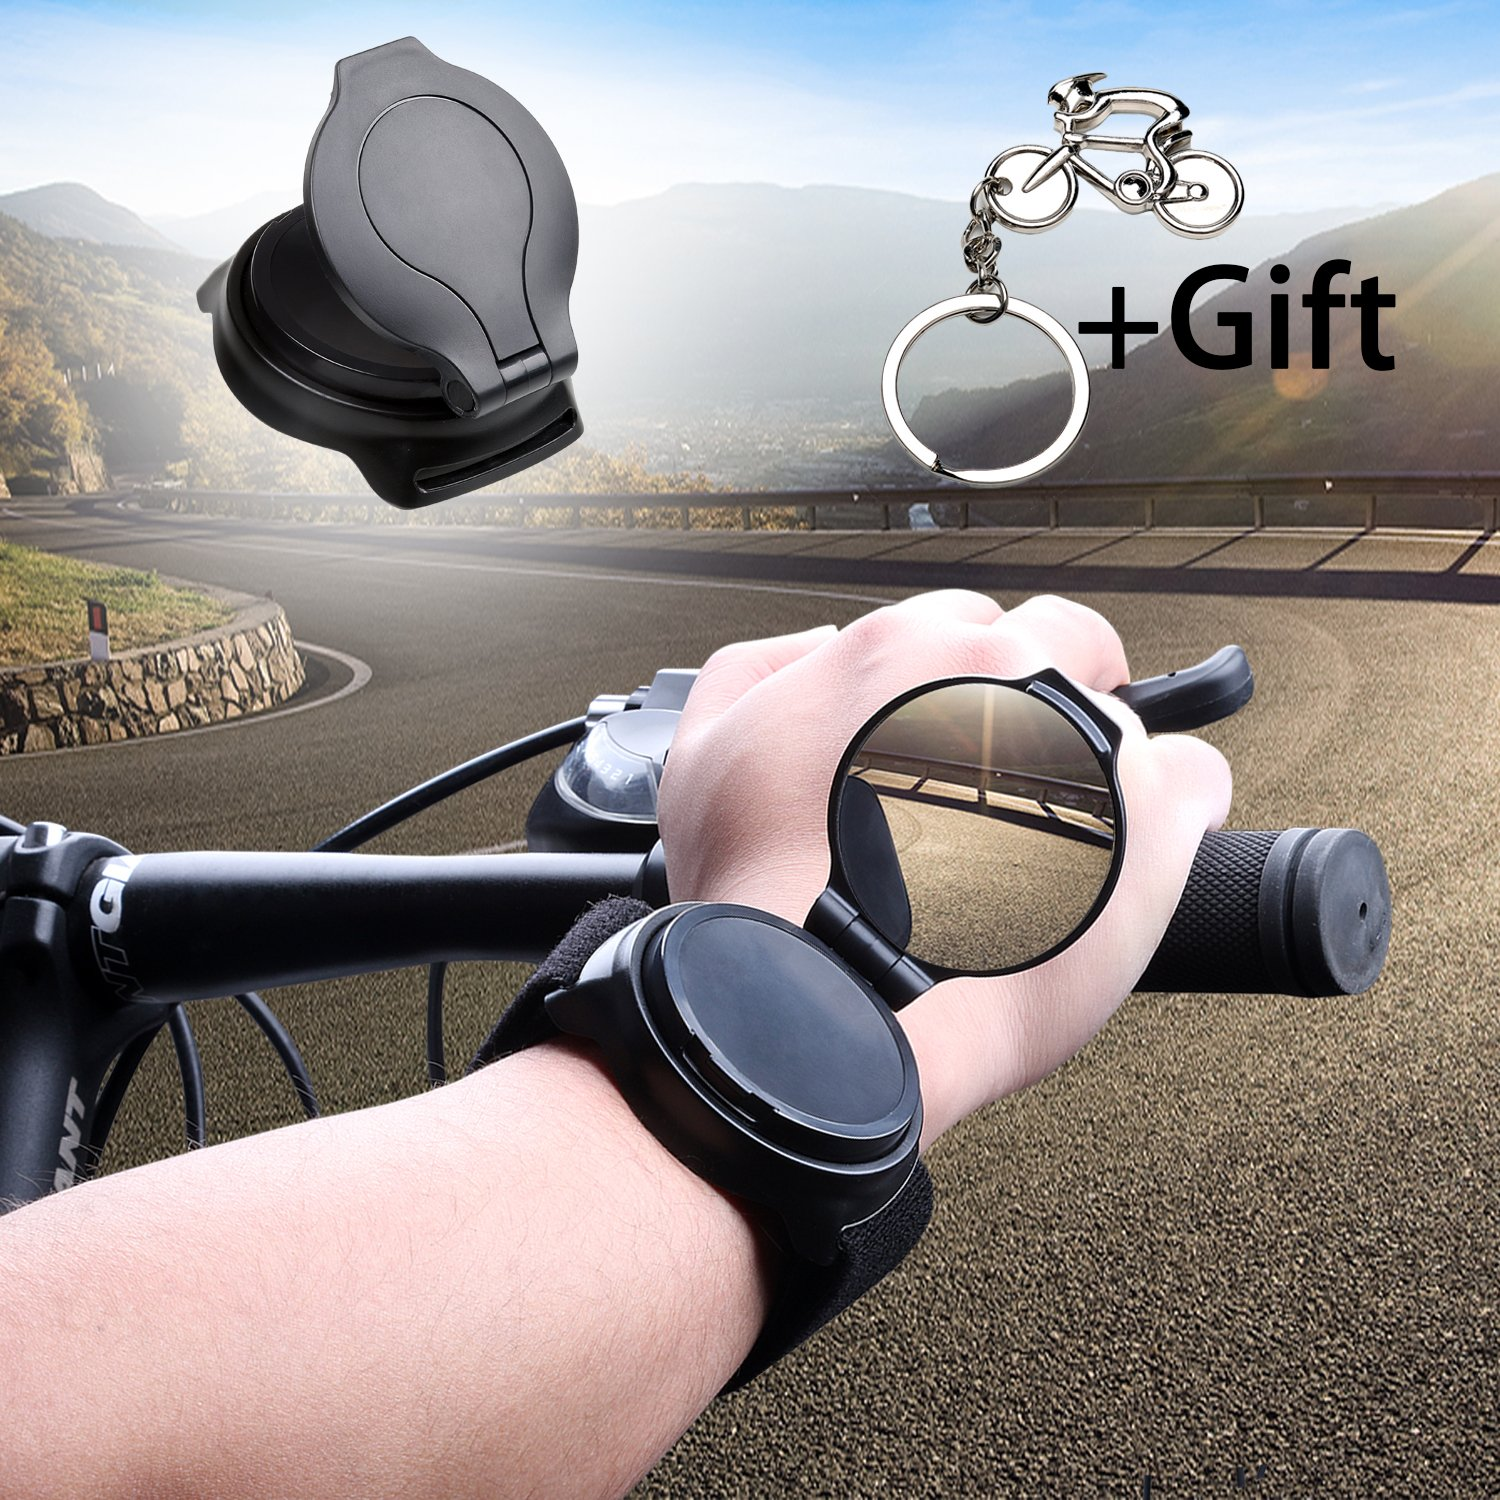 Bicycle Wrist Mirror, Wrist Band Bike Mirrors for Safety Cycling Rotatable Collapsible Cycle Backeye with Elastic Armband Portable Biking Accessories by West Biking (Image #4)